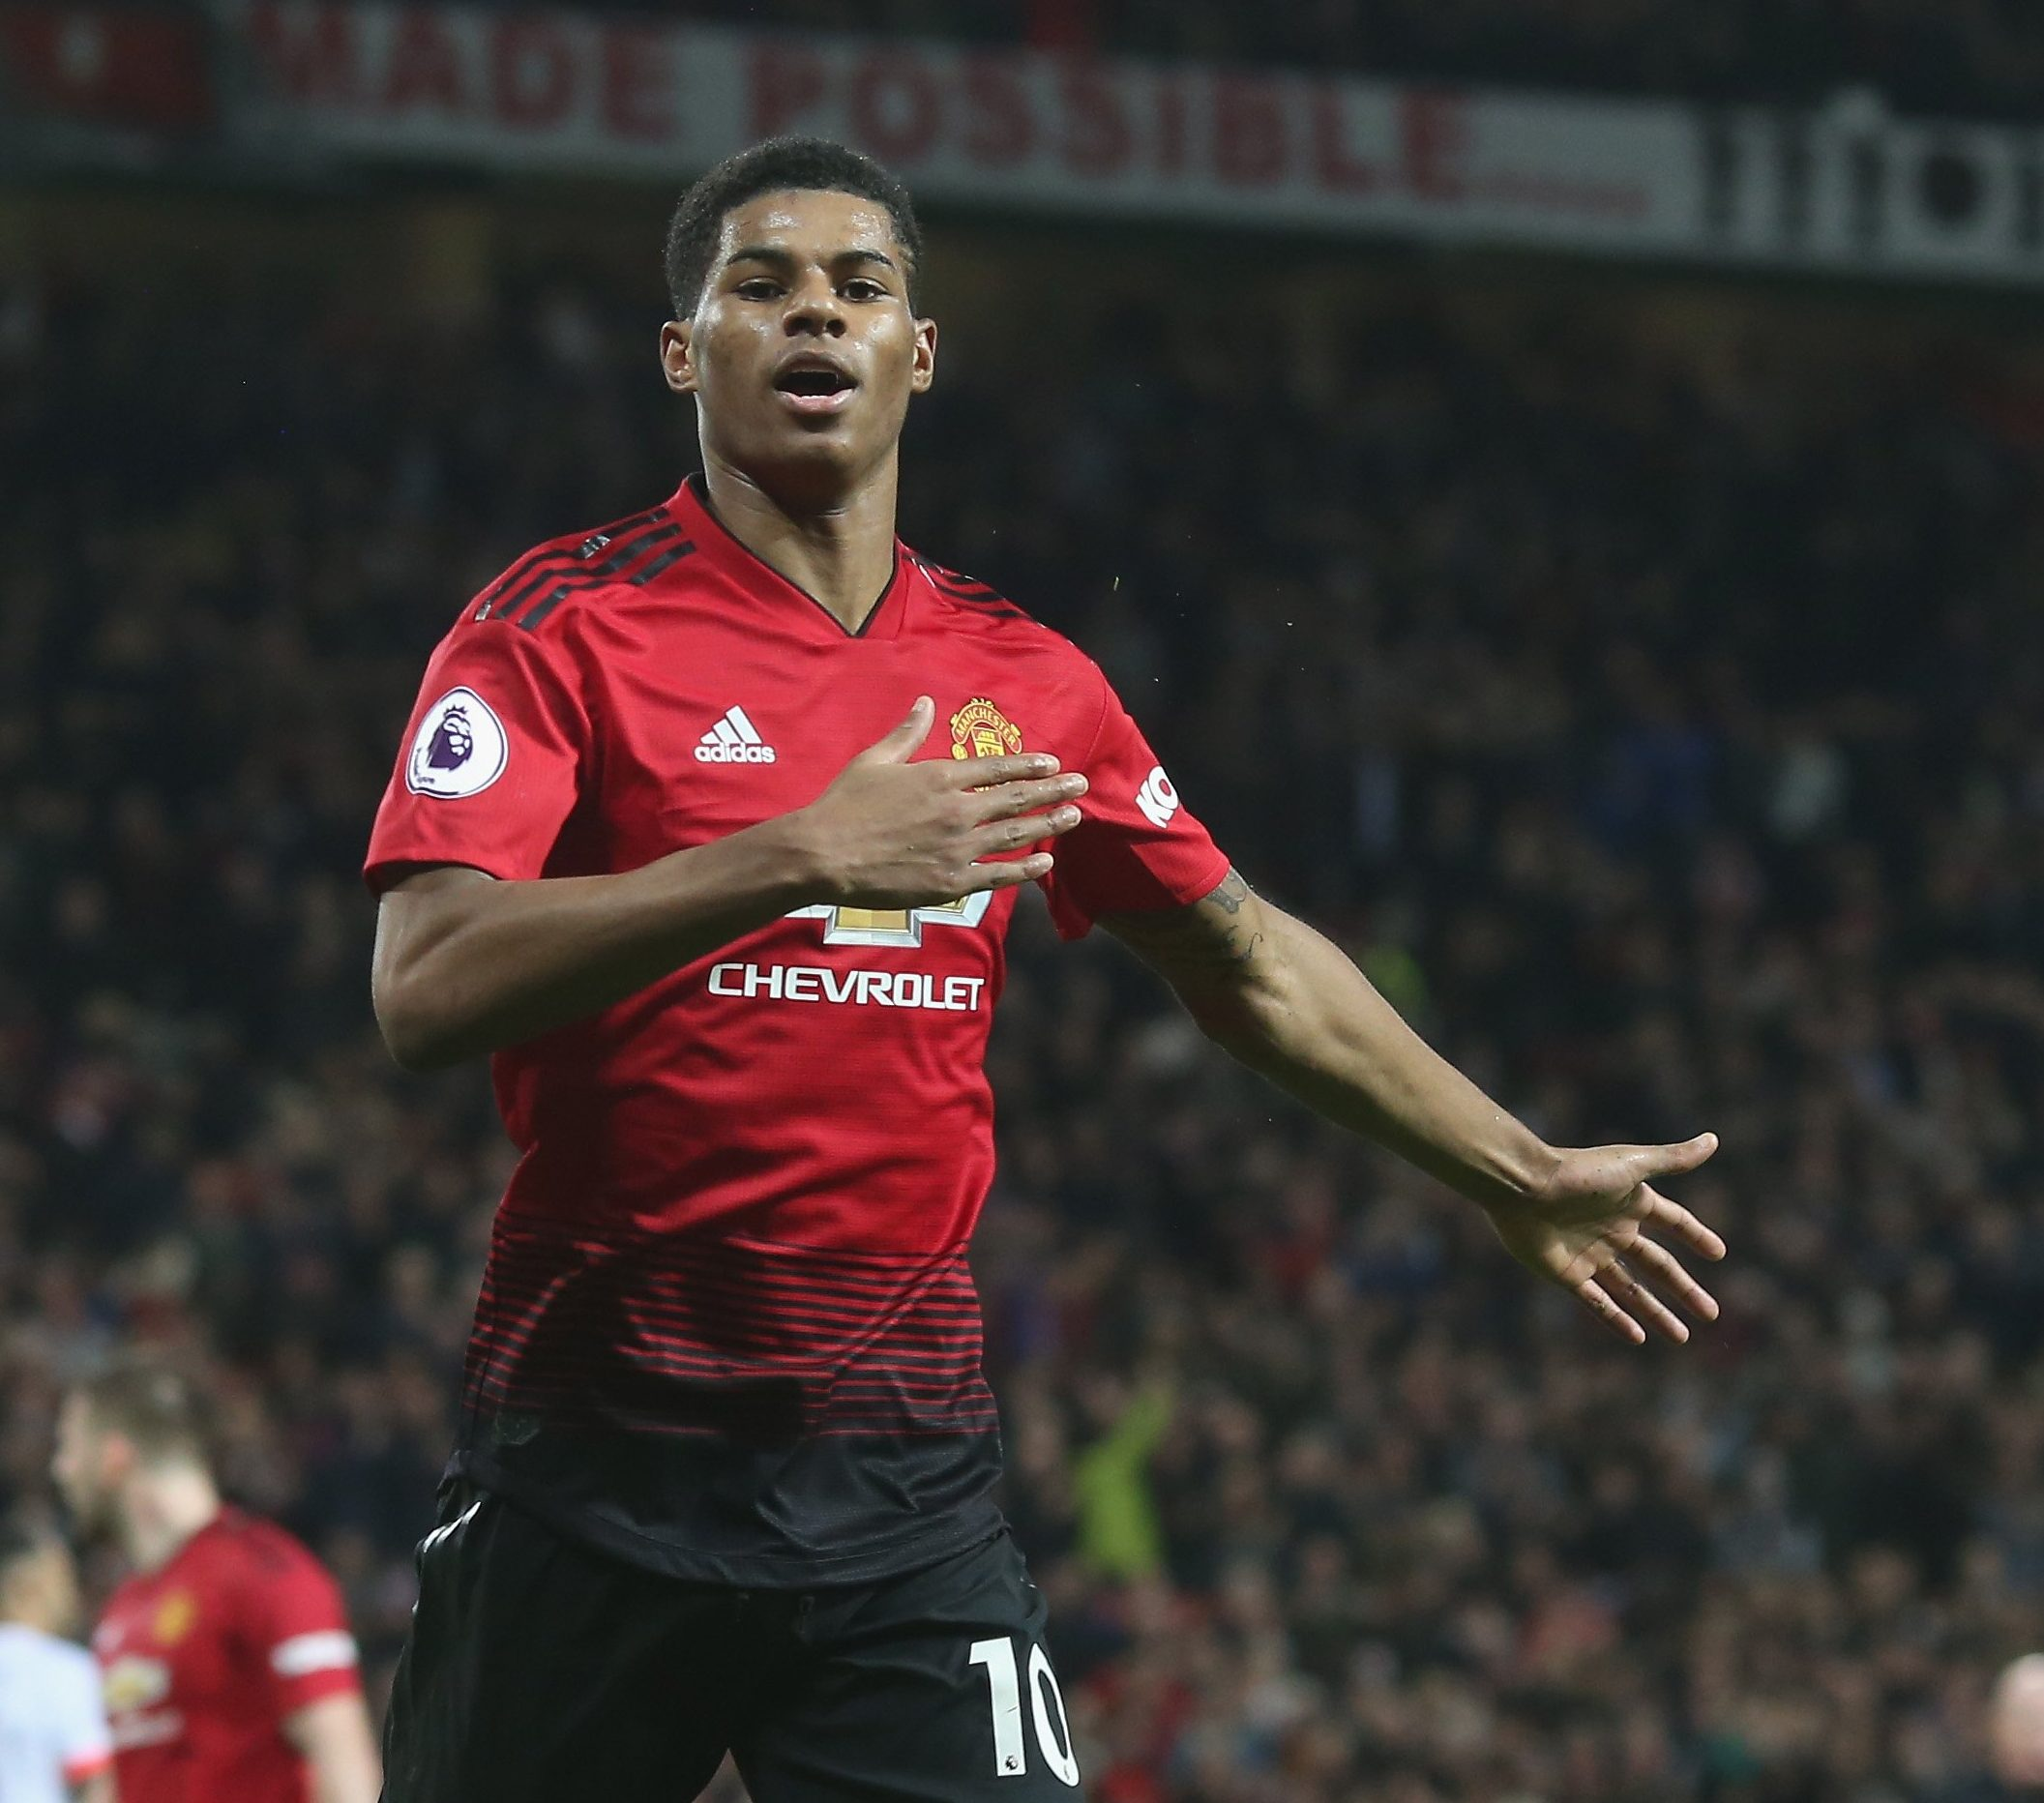 MANCHESTER, ENGLAND - DECEMBER 30: Marcus Rashford of Manchester United celebrates scoring their third goal during the Premier League match between Manchester United and AFC Bournemouth at Old Trafford on December 30, 2018 in Manchester, United Kingdom. (Photo by Tom Purslow/Man Utd via Getty Images)